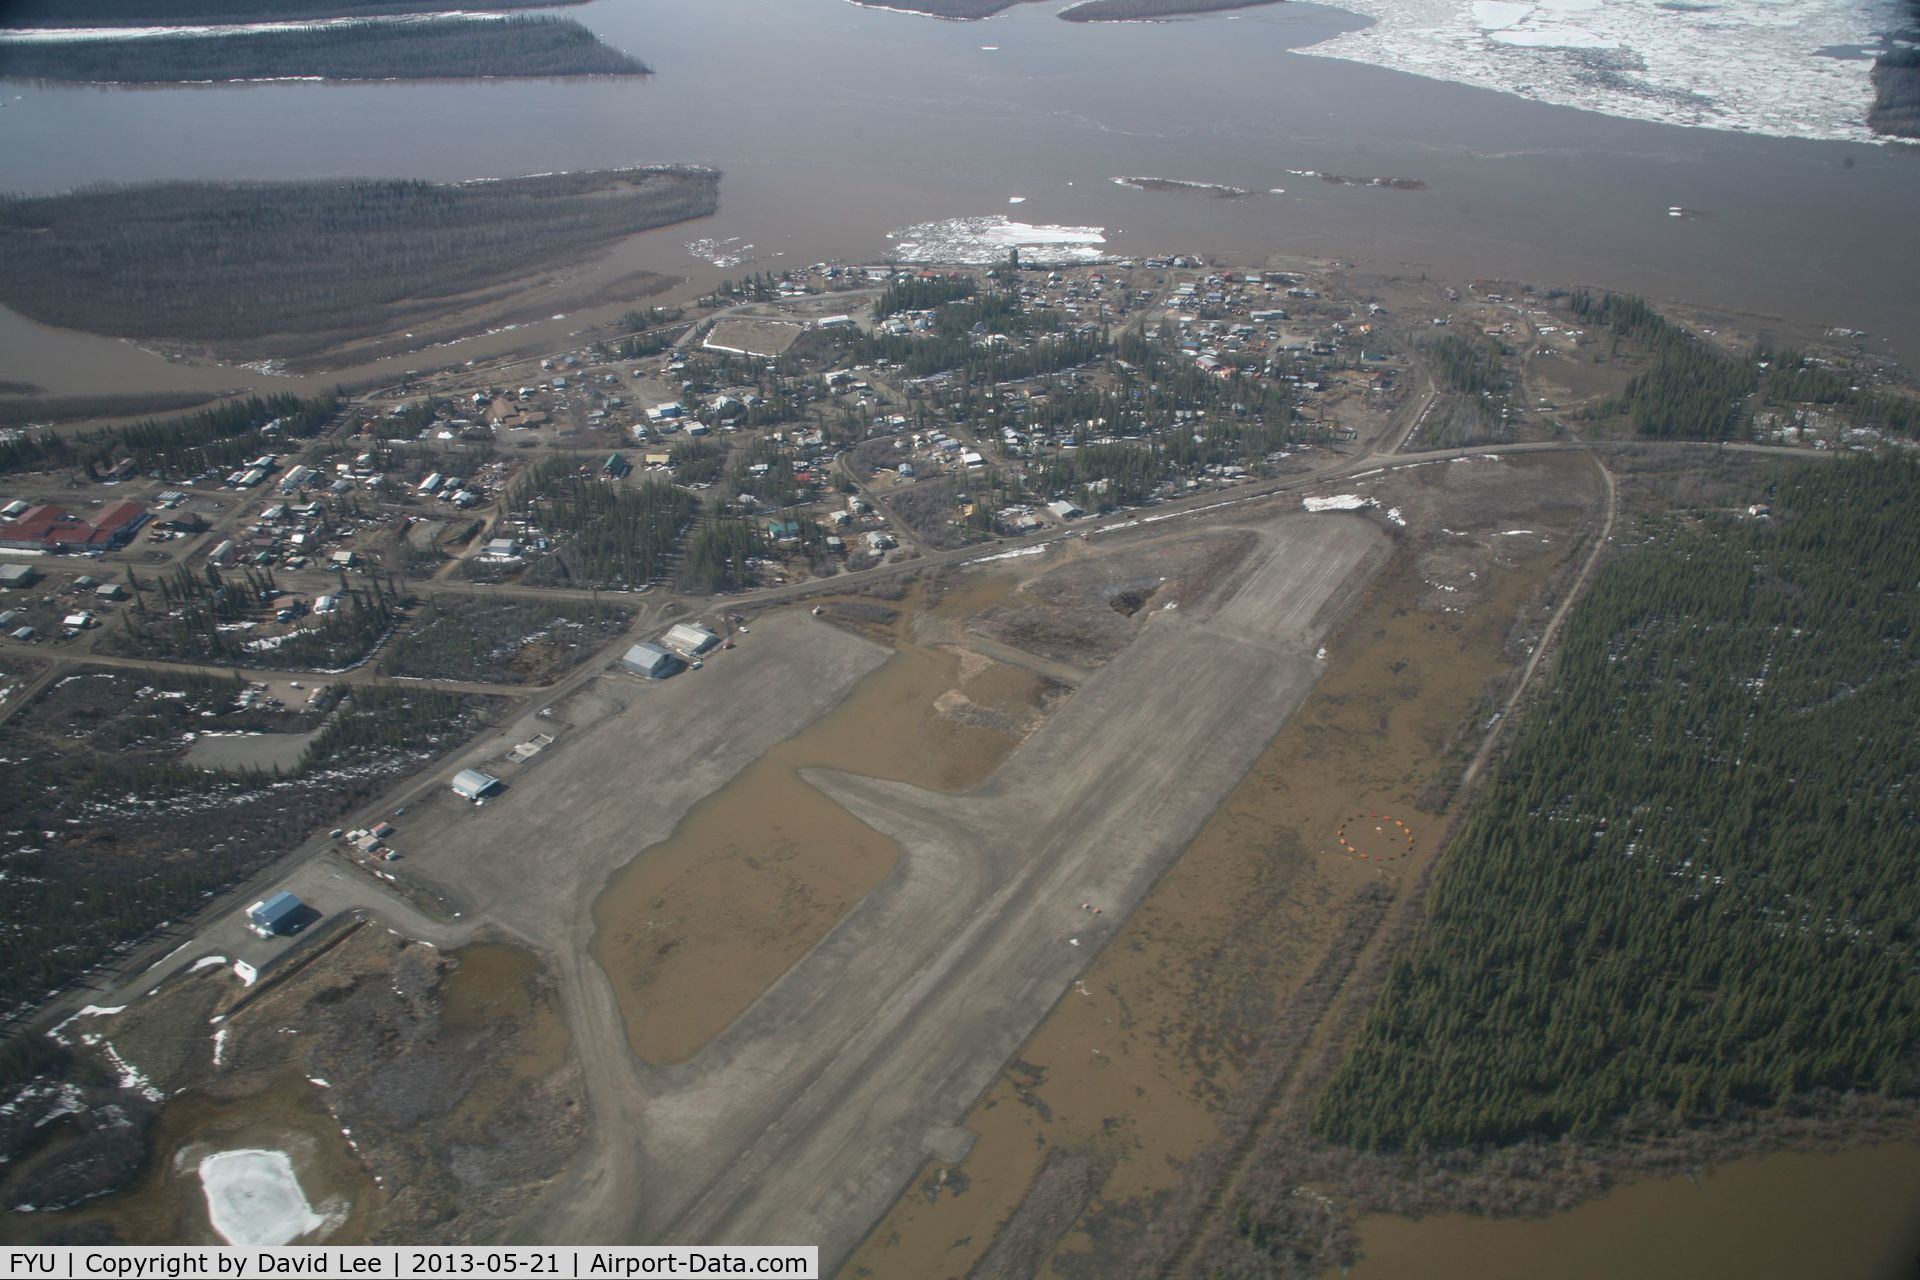 Fort Yukon Airport (FYU) - Fort Yukon, Alaska.  Minor flooding of ramp during breakup of Yukon River.  Taken from Wright Air N4637U piloted by Dave Lorring.